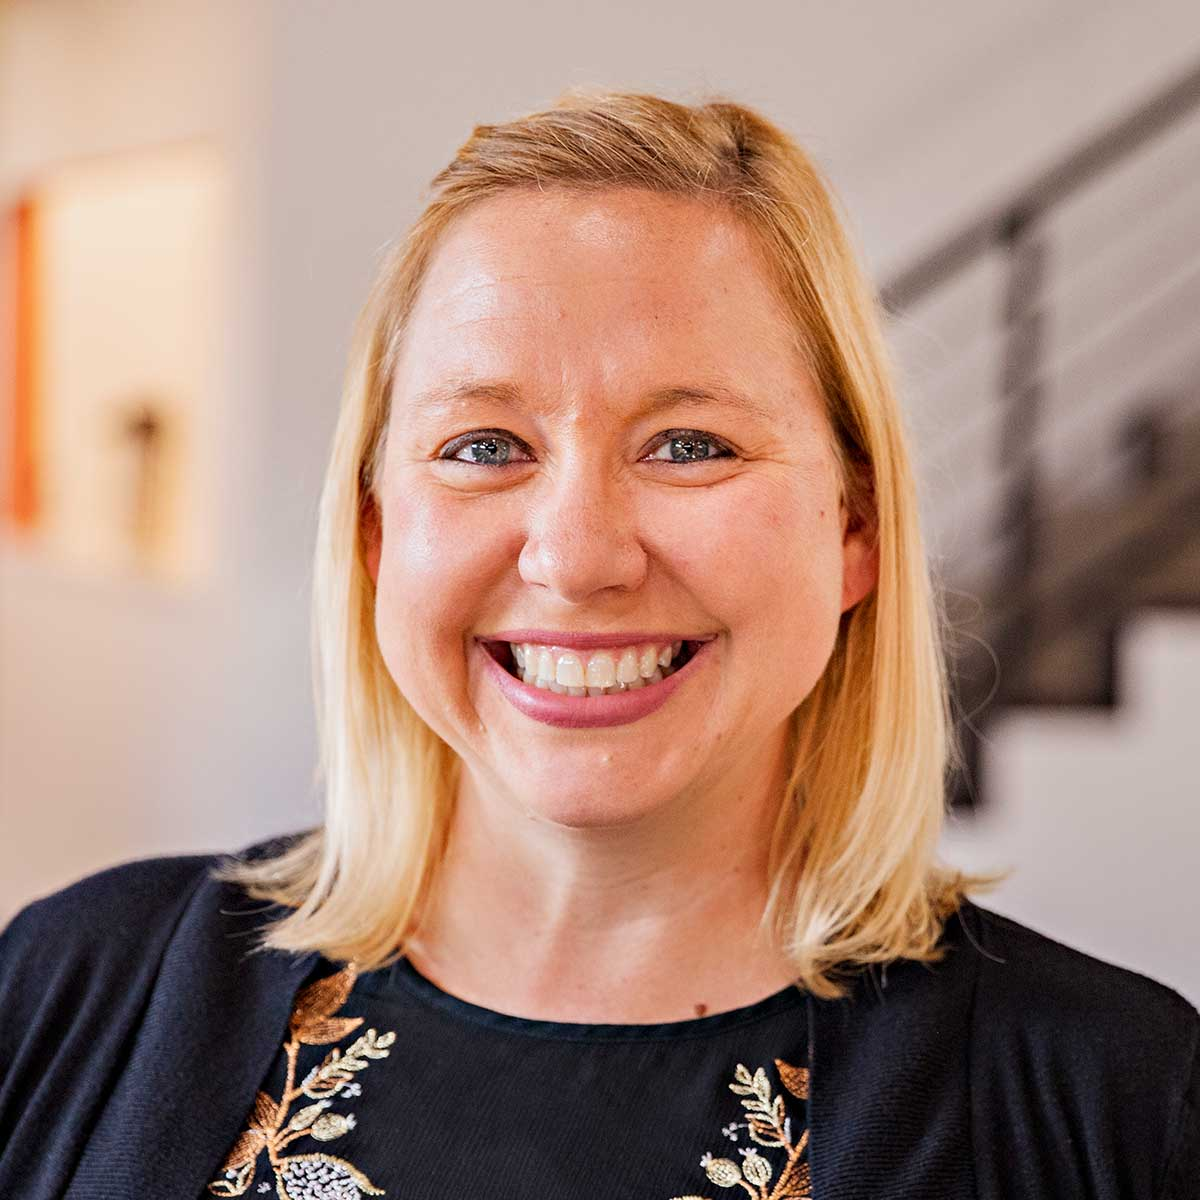 Erin Acuff, Senior Director of Client Services at Insight Creative Group